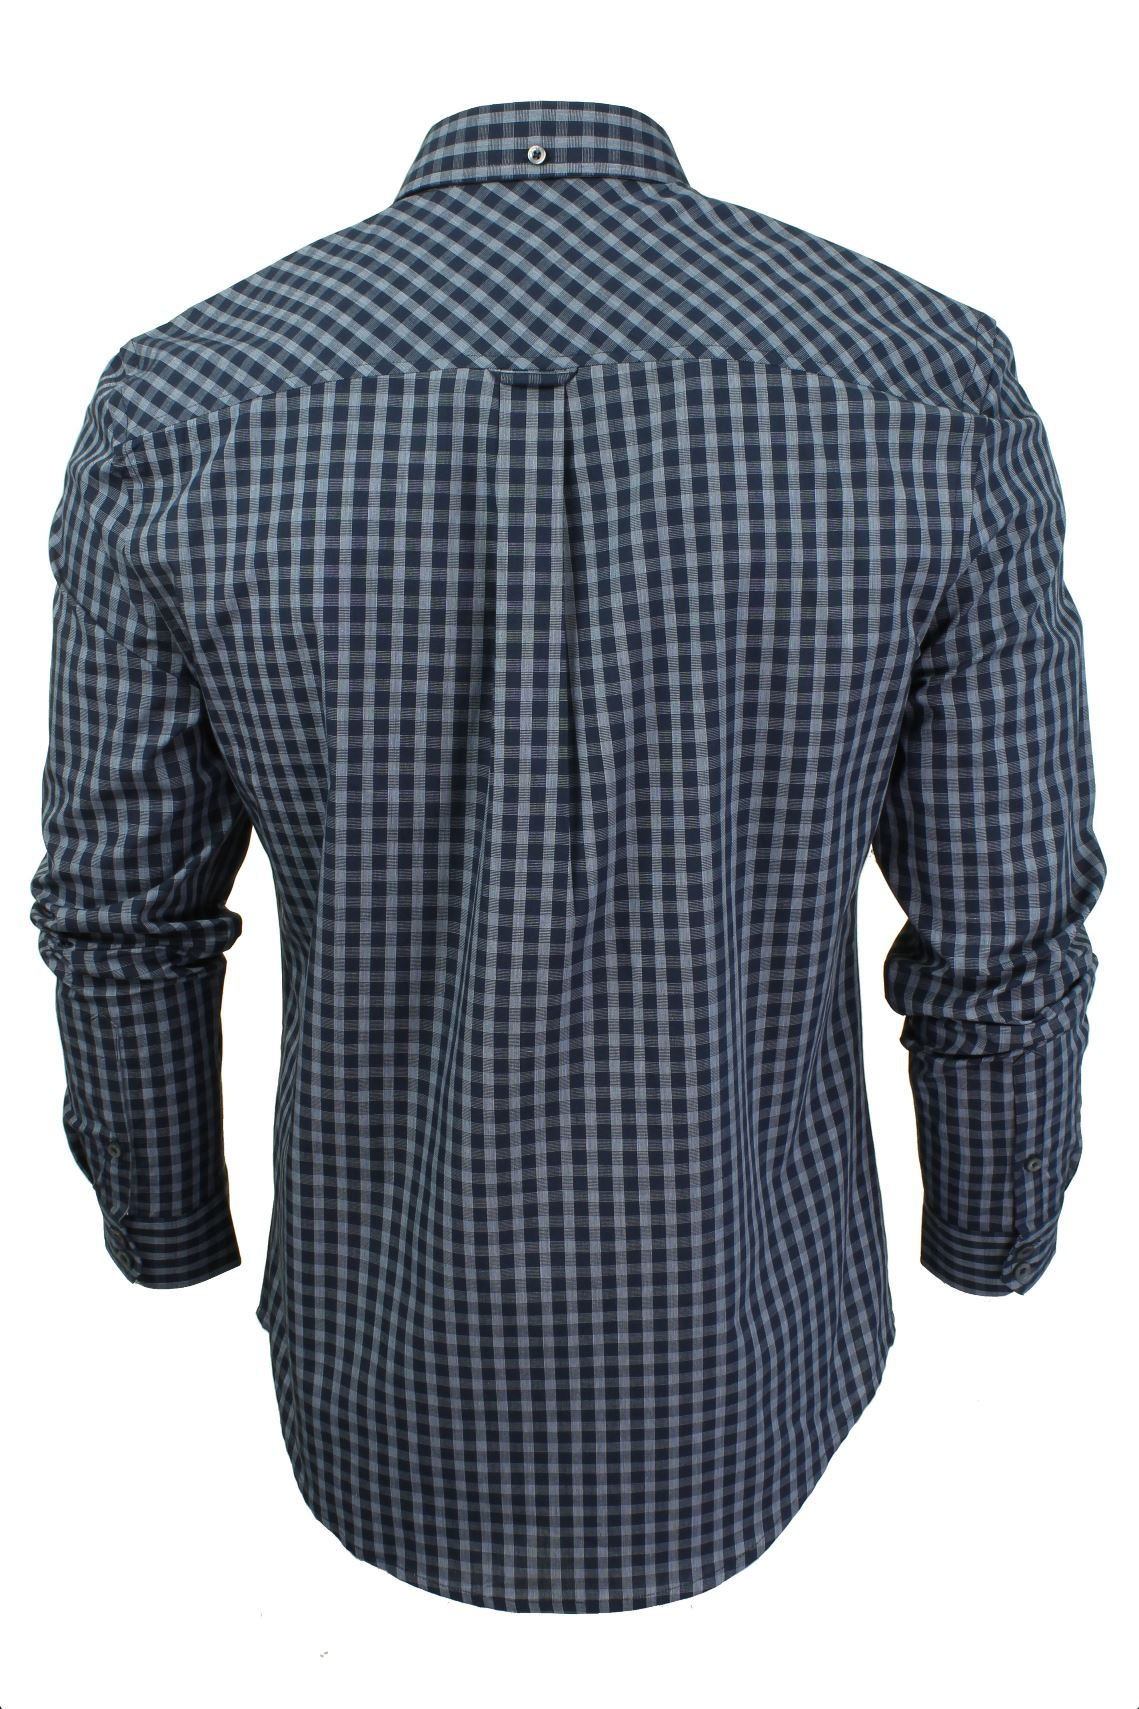 Mens-Windowpane-Check-Shirt-by-Ben-Sherman-Long-Sleeved thumbnail 5